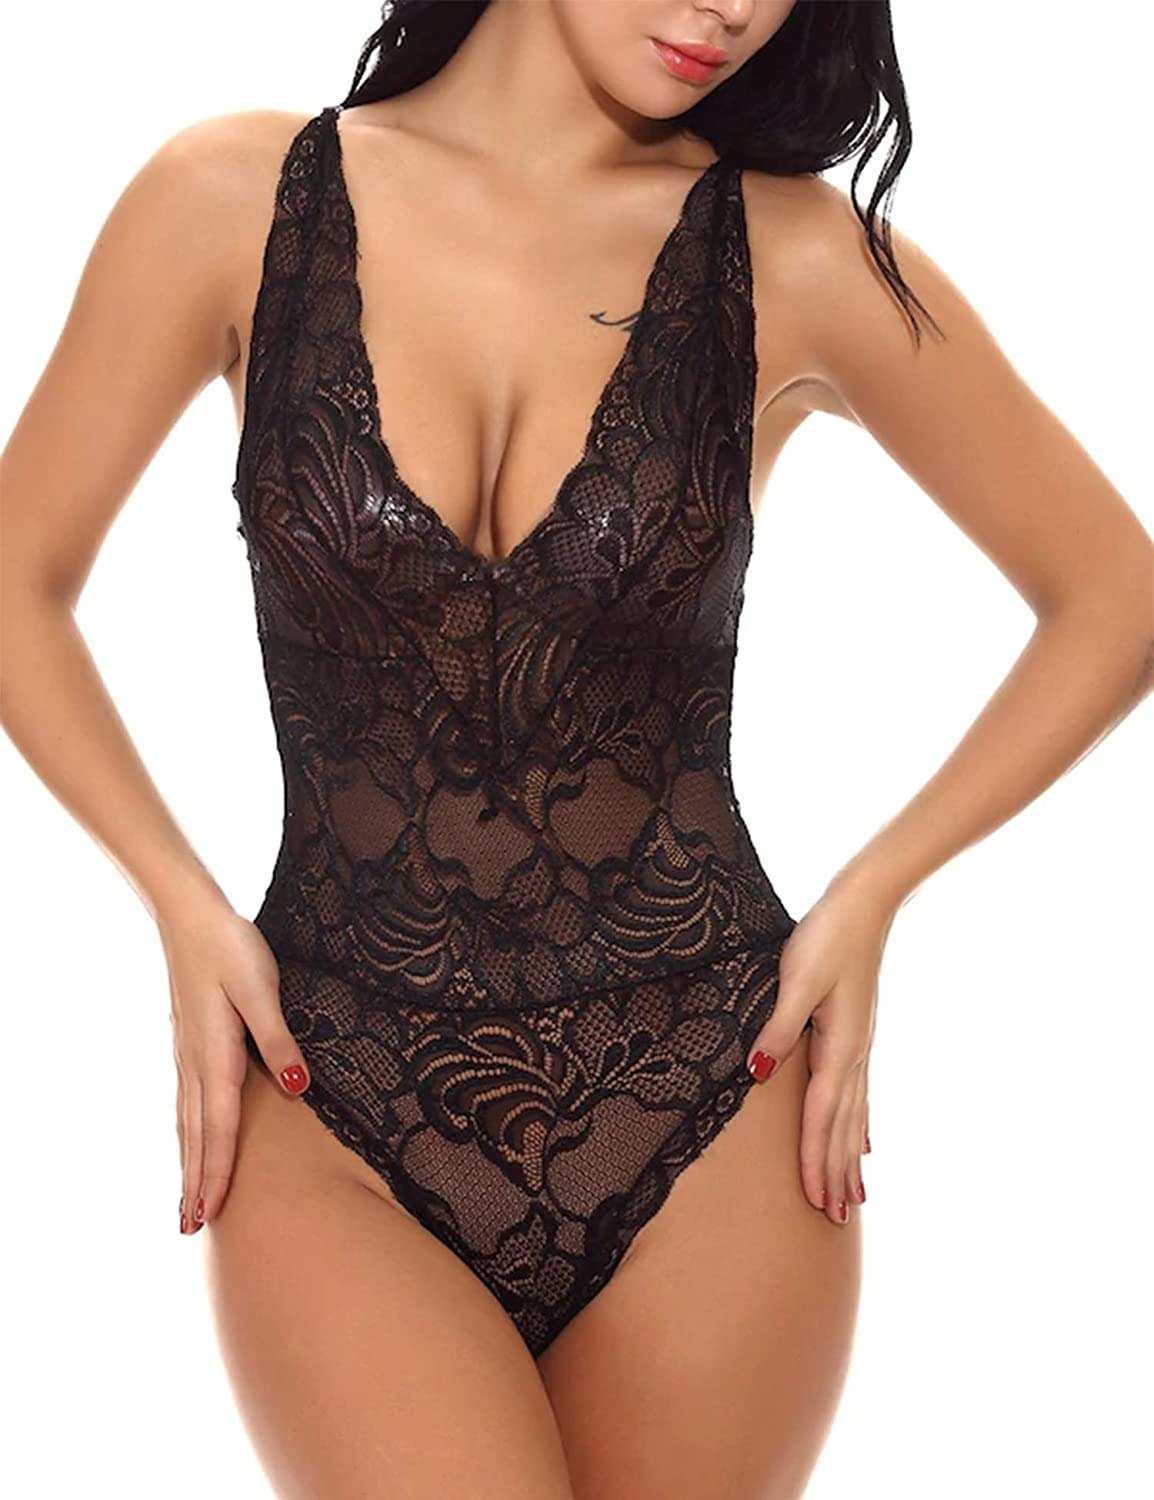 wearella Women Deep V Lingerie One Piece Babydoll Open Back Halter Mini Bodysuit